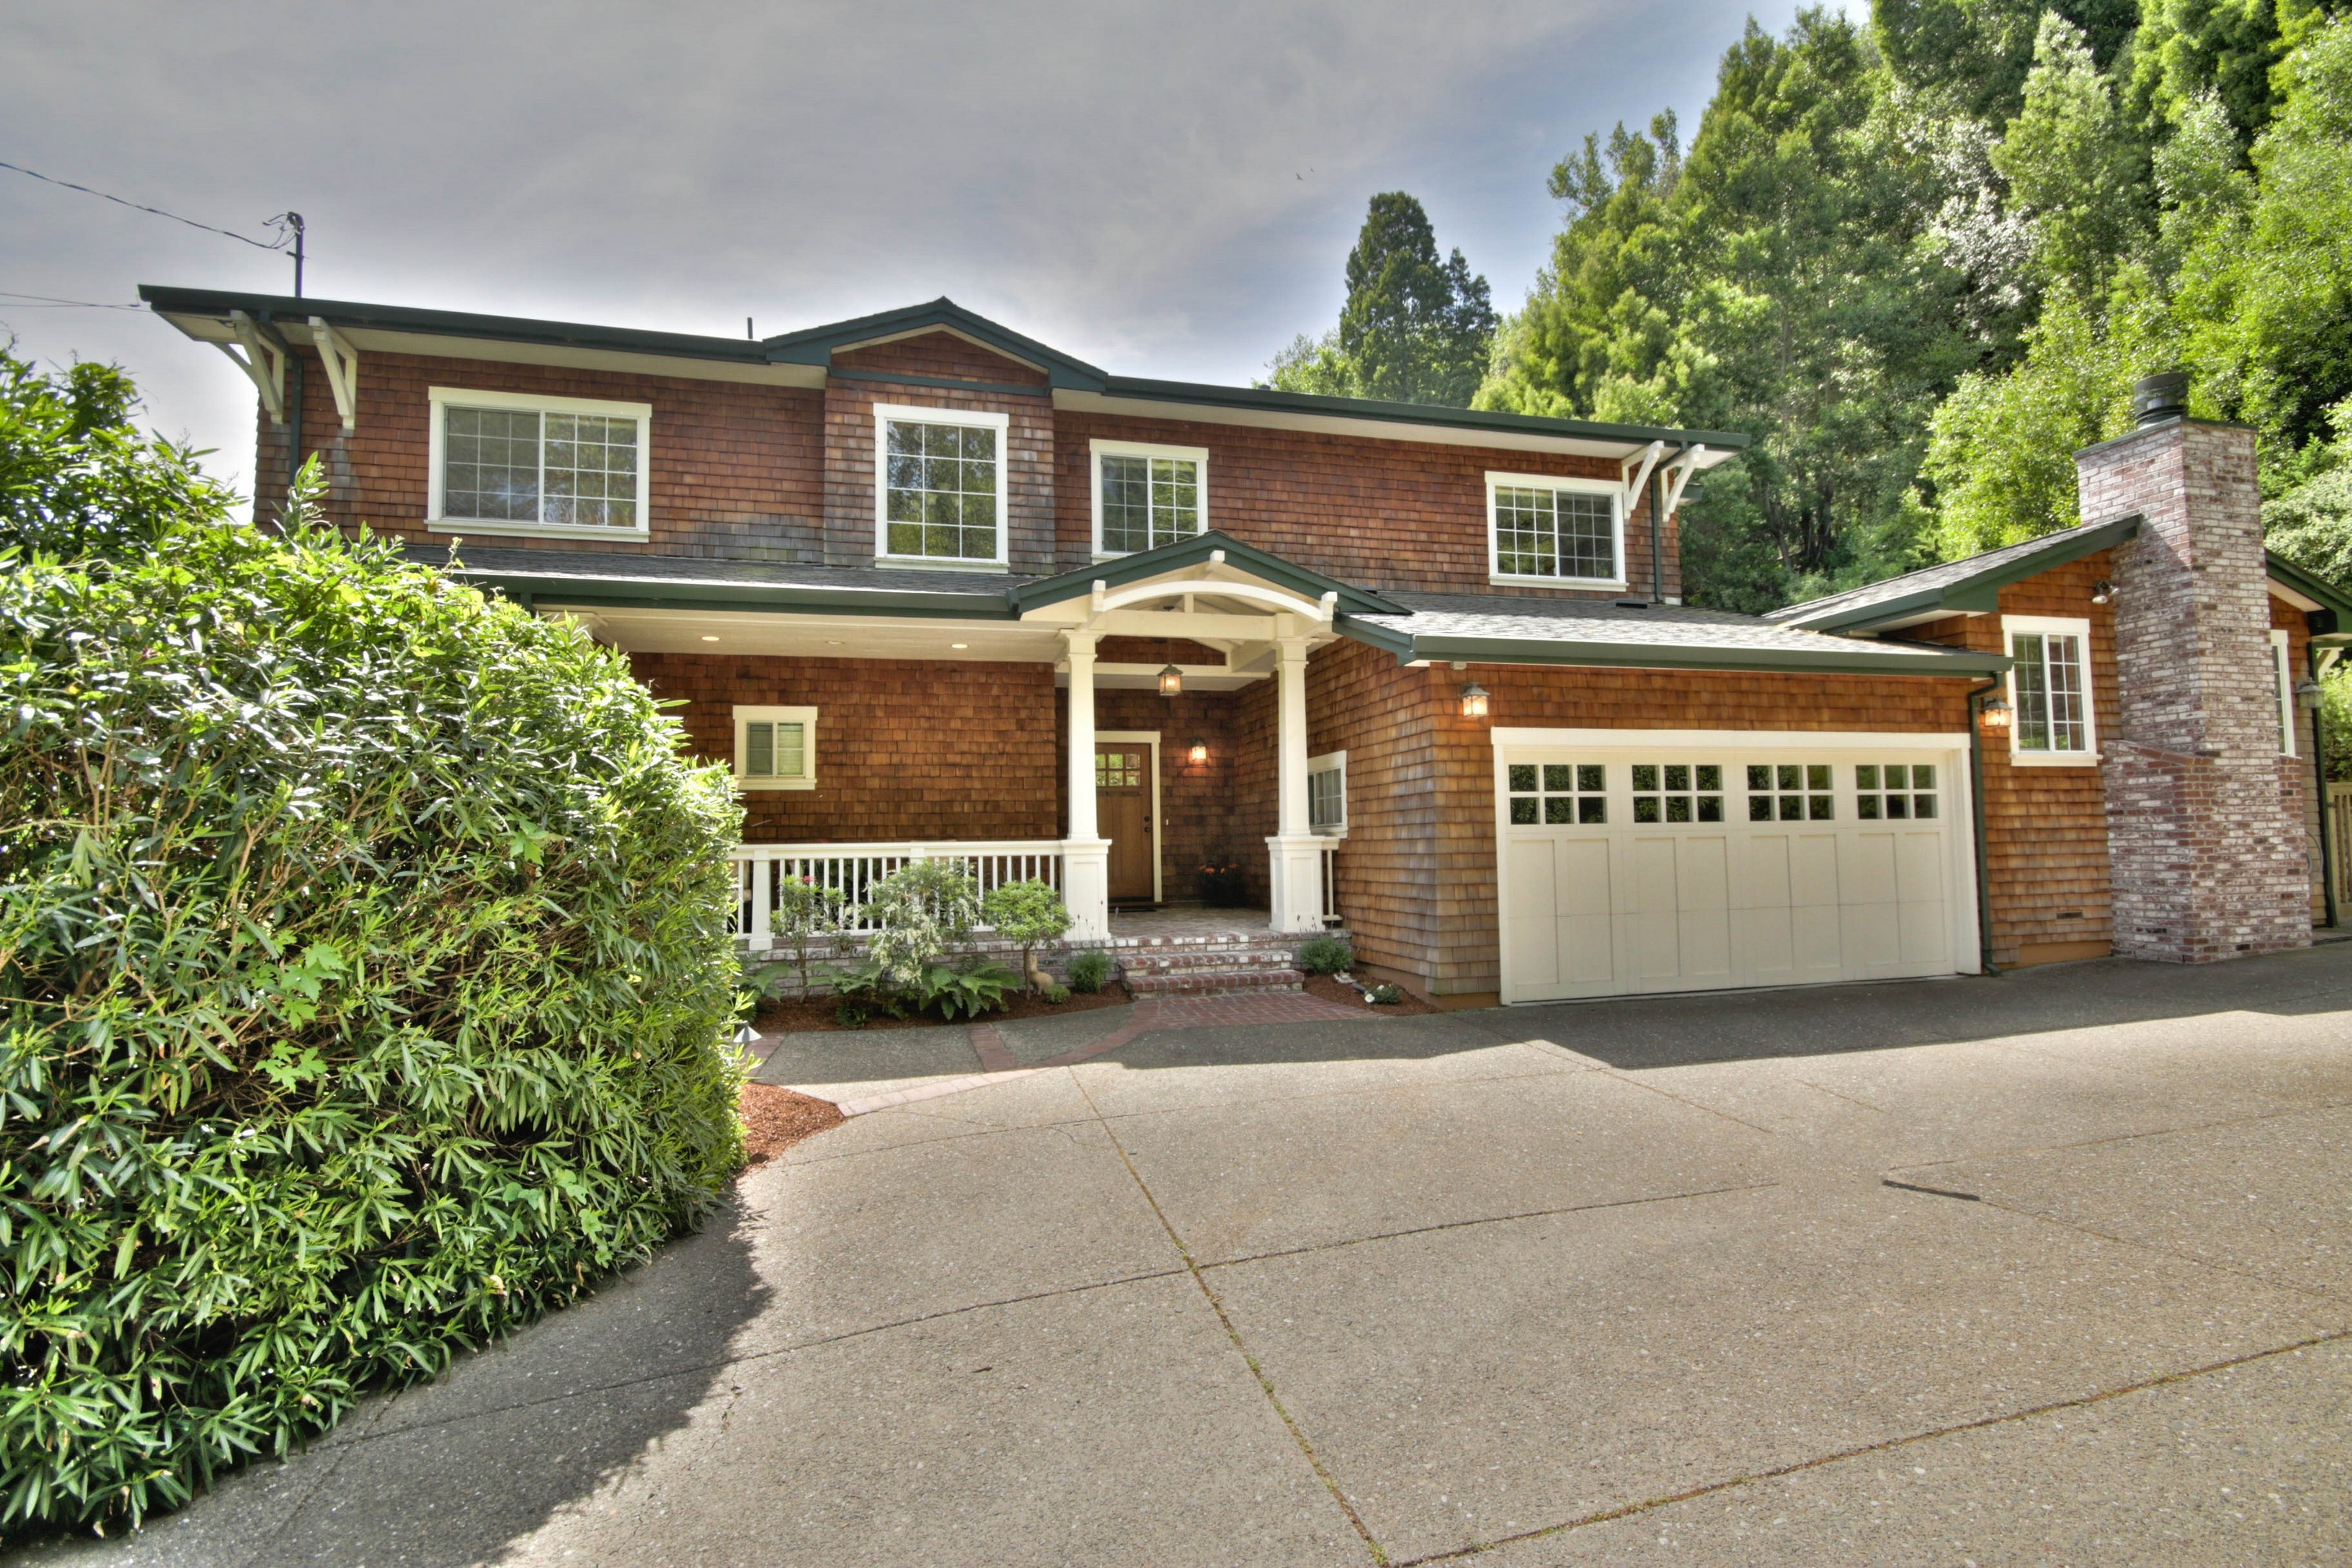 Single Family Home for Sale at Stunning Remodeled Craftsman 121 Sycamore Ave Larkspur, California, 94939 United States